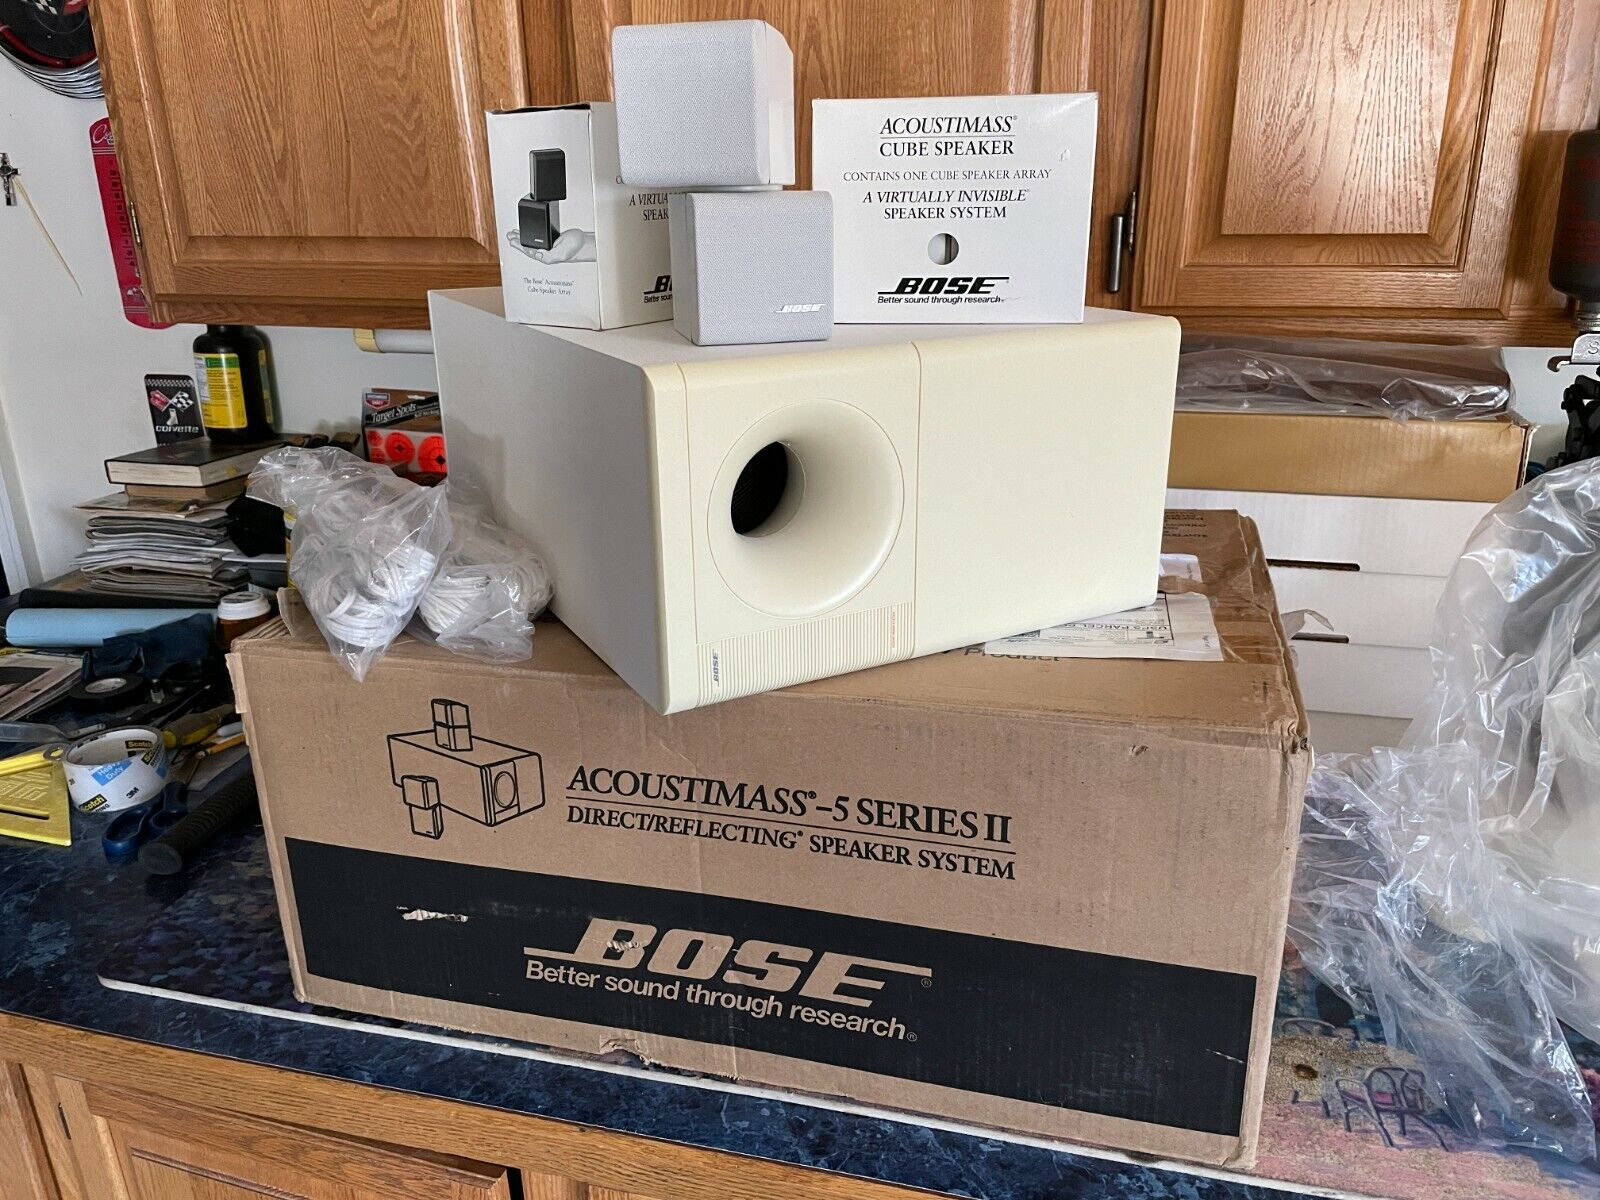 Bose Acoustimass 5 Series II (White) 4.1 Surround Sound Home Audio. Buy it now for 220.00